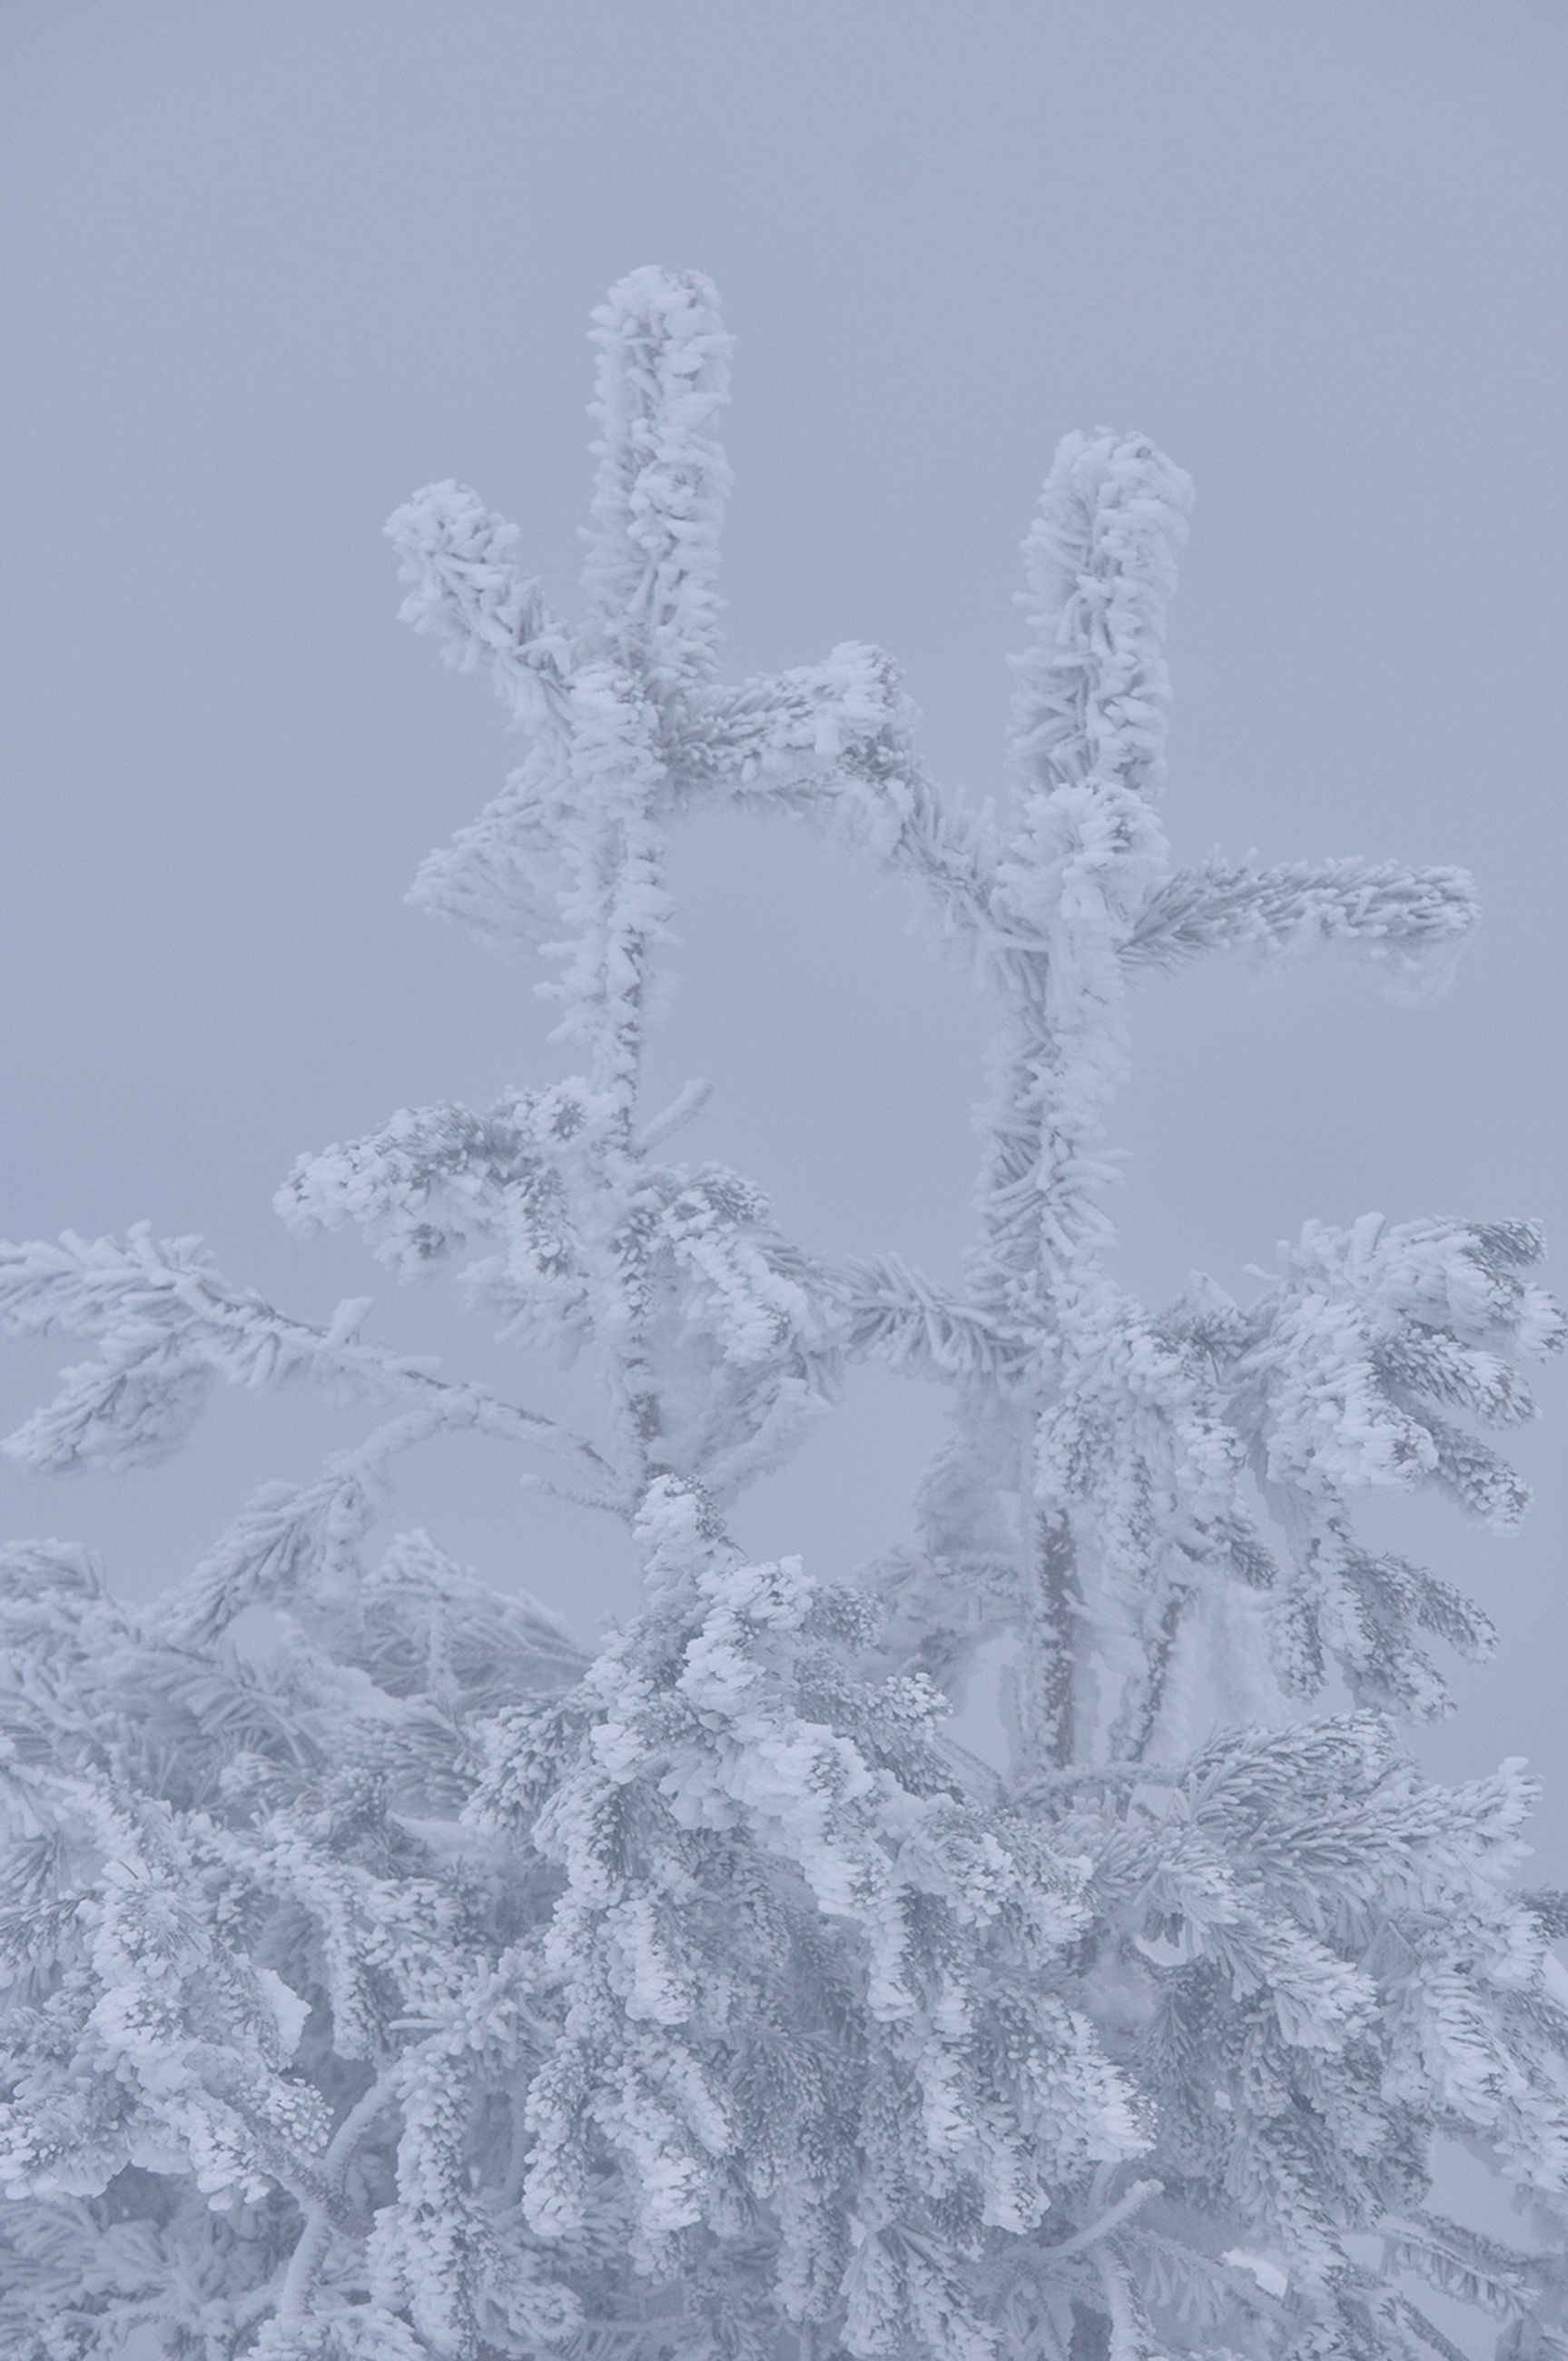 winter, snow, cold temperature, white color, weather, nature, no people, beauty in nature, outdoors, day, close-up, sky